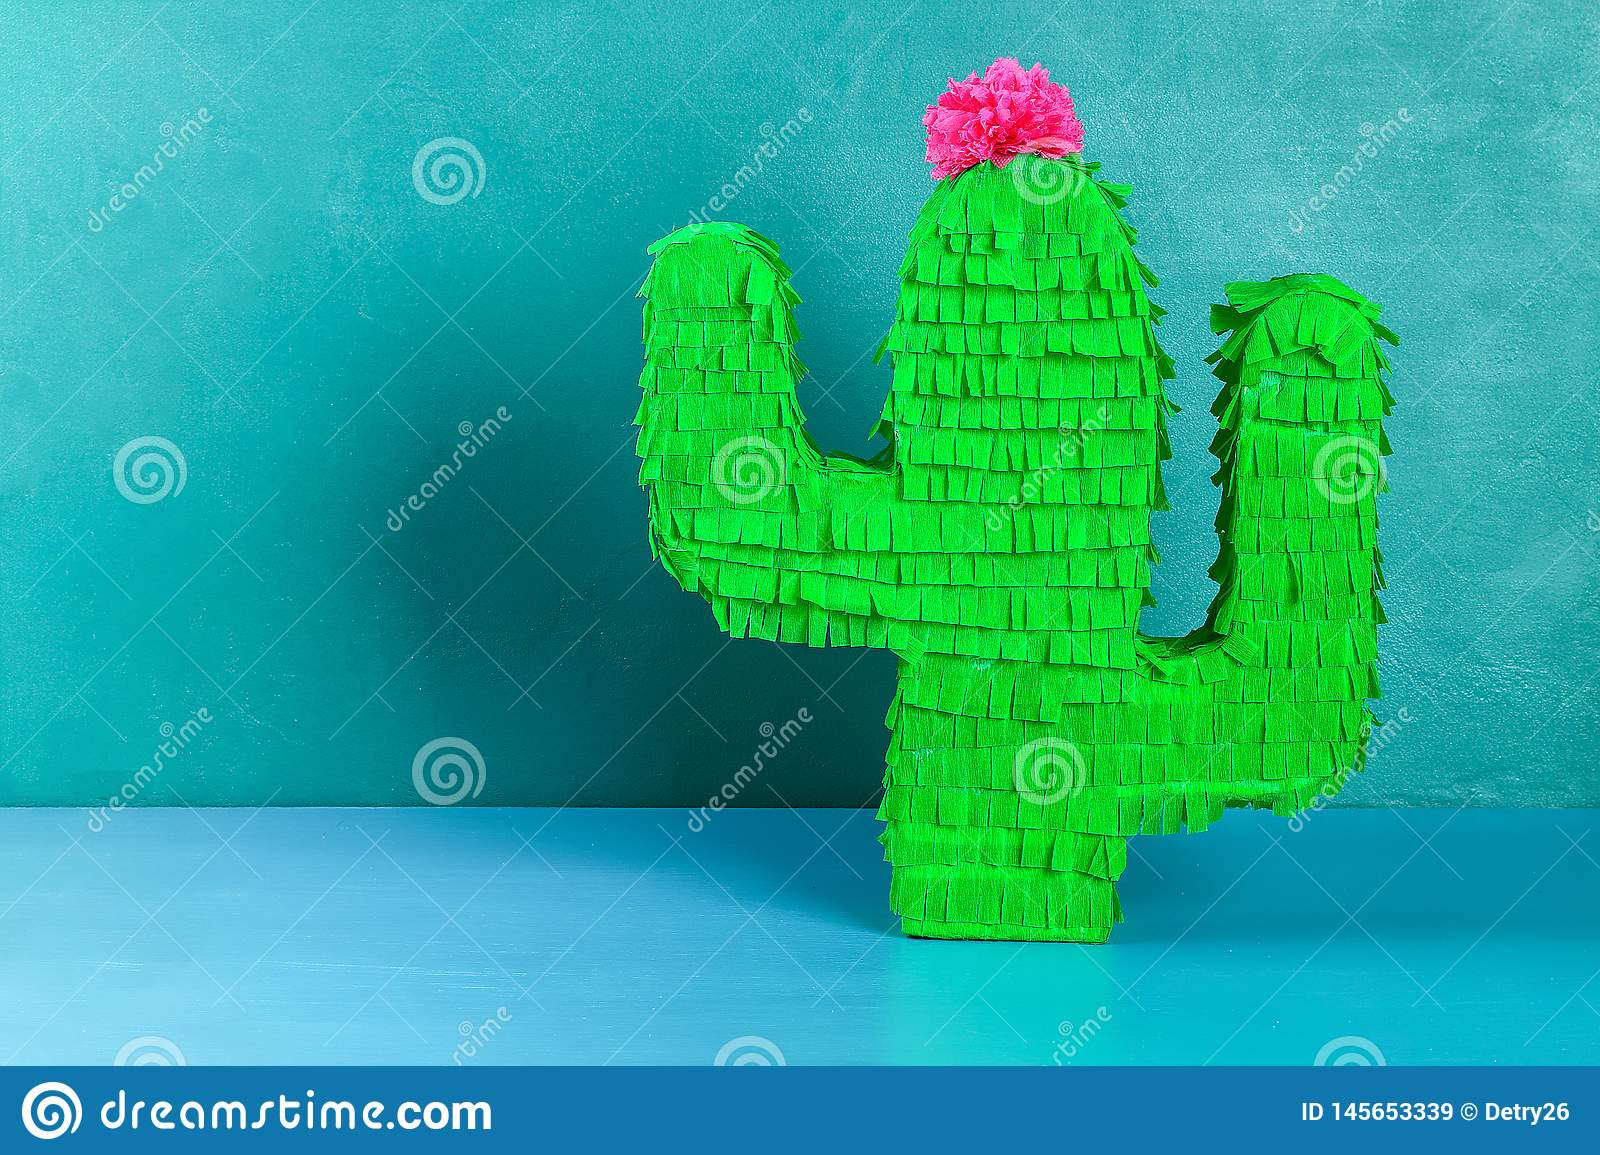 Diy cinco de mayo Mexican Pinata Cactus made cardboard, crepe paper your own hands blue background